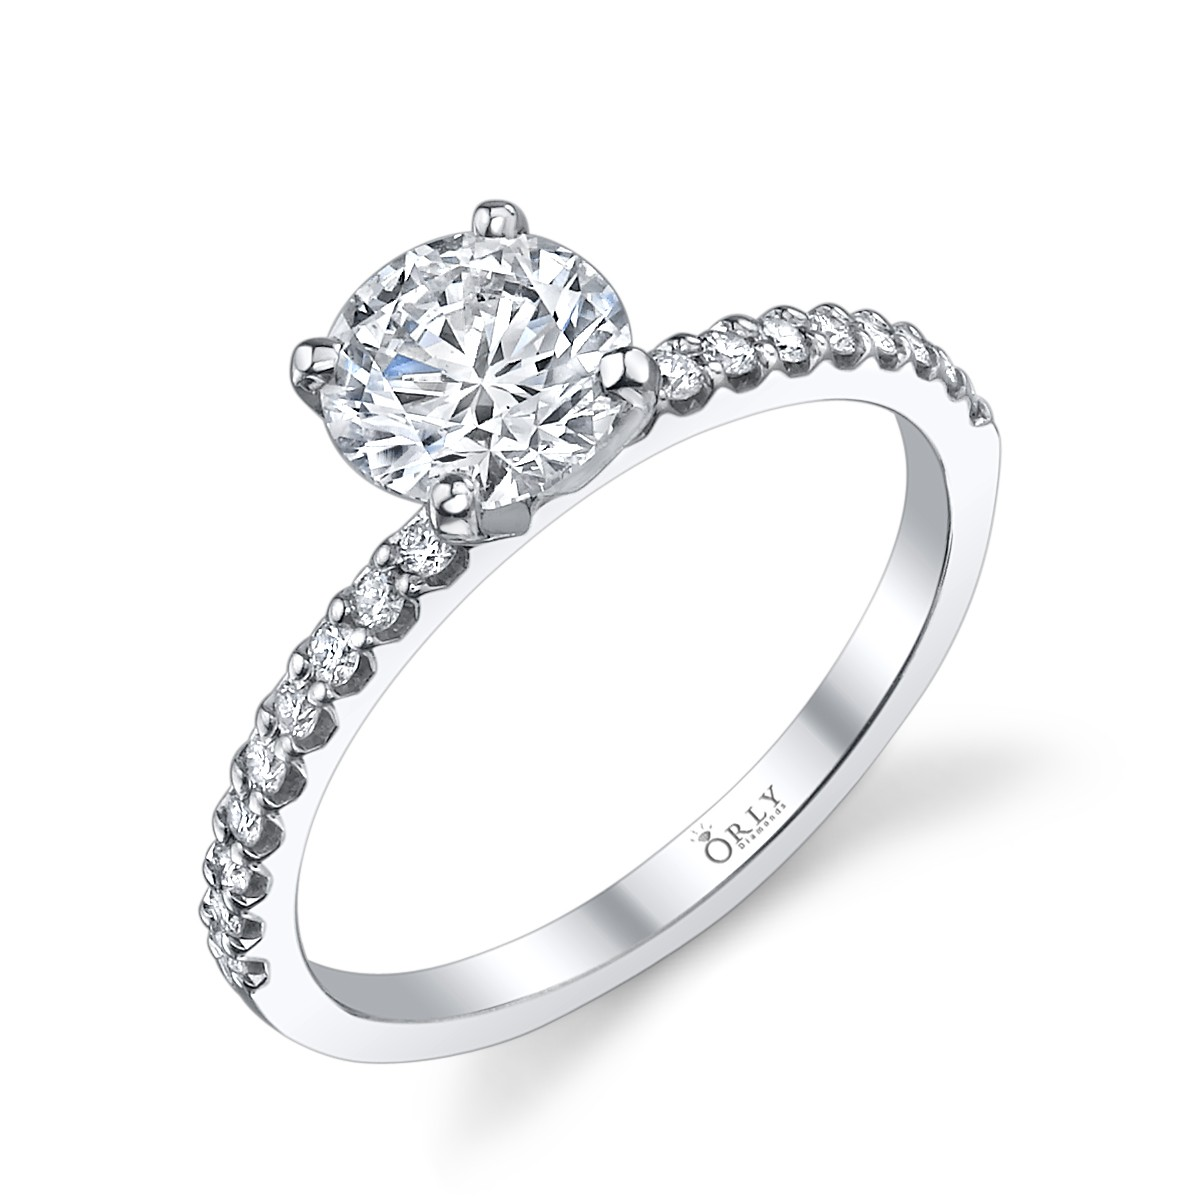 Round Brilliant Cut Diamond in Elegance Setting